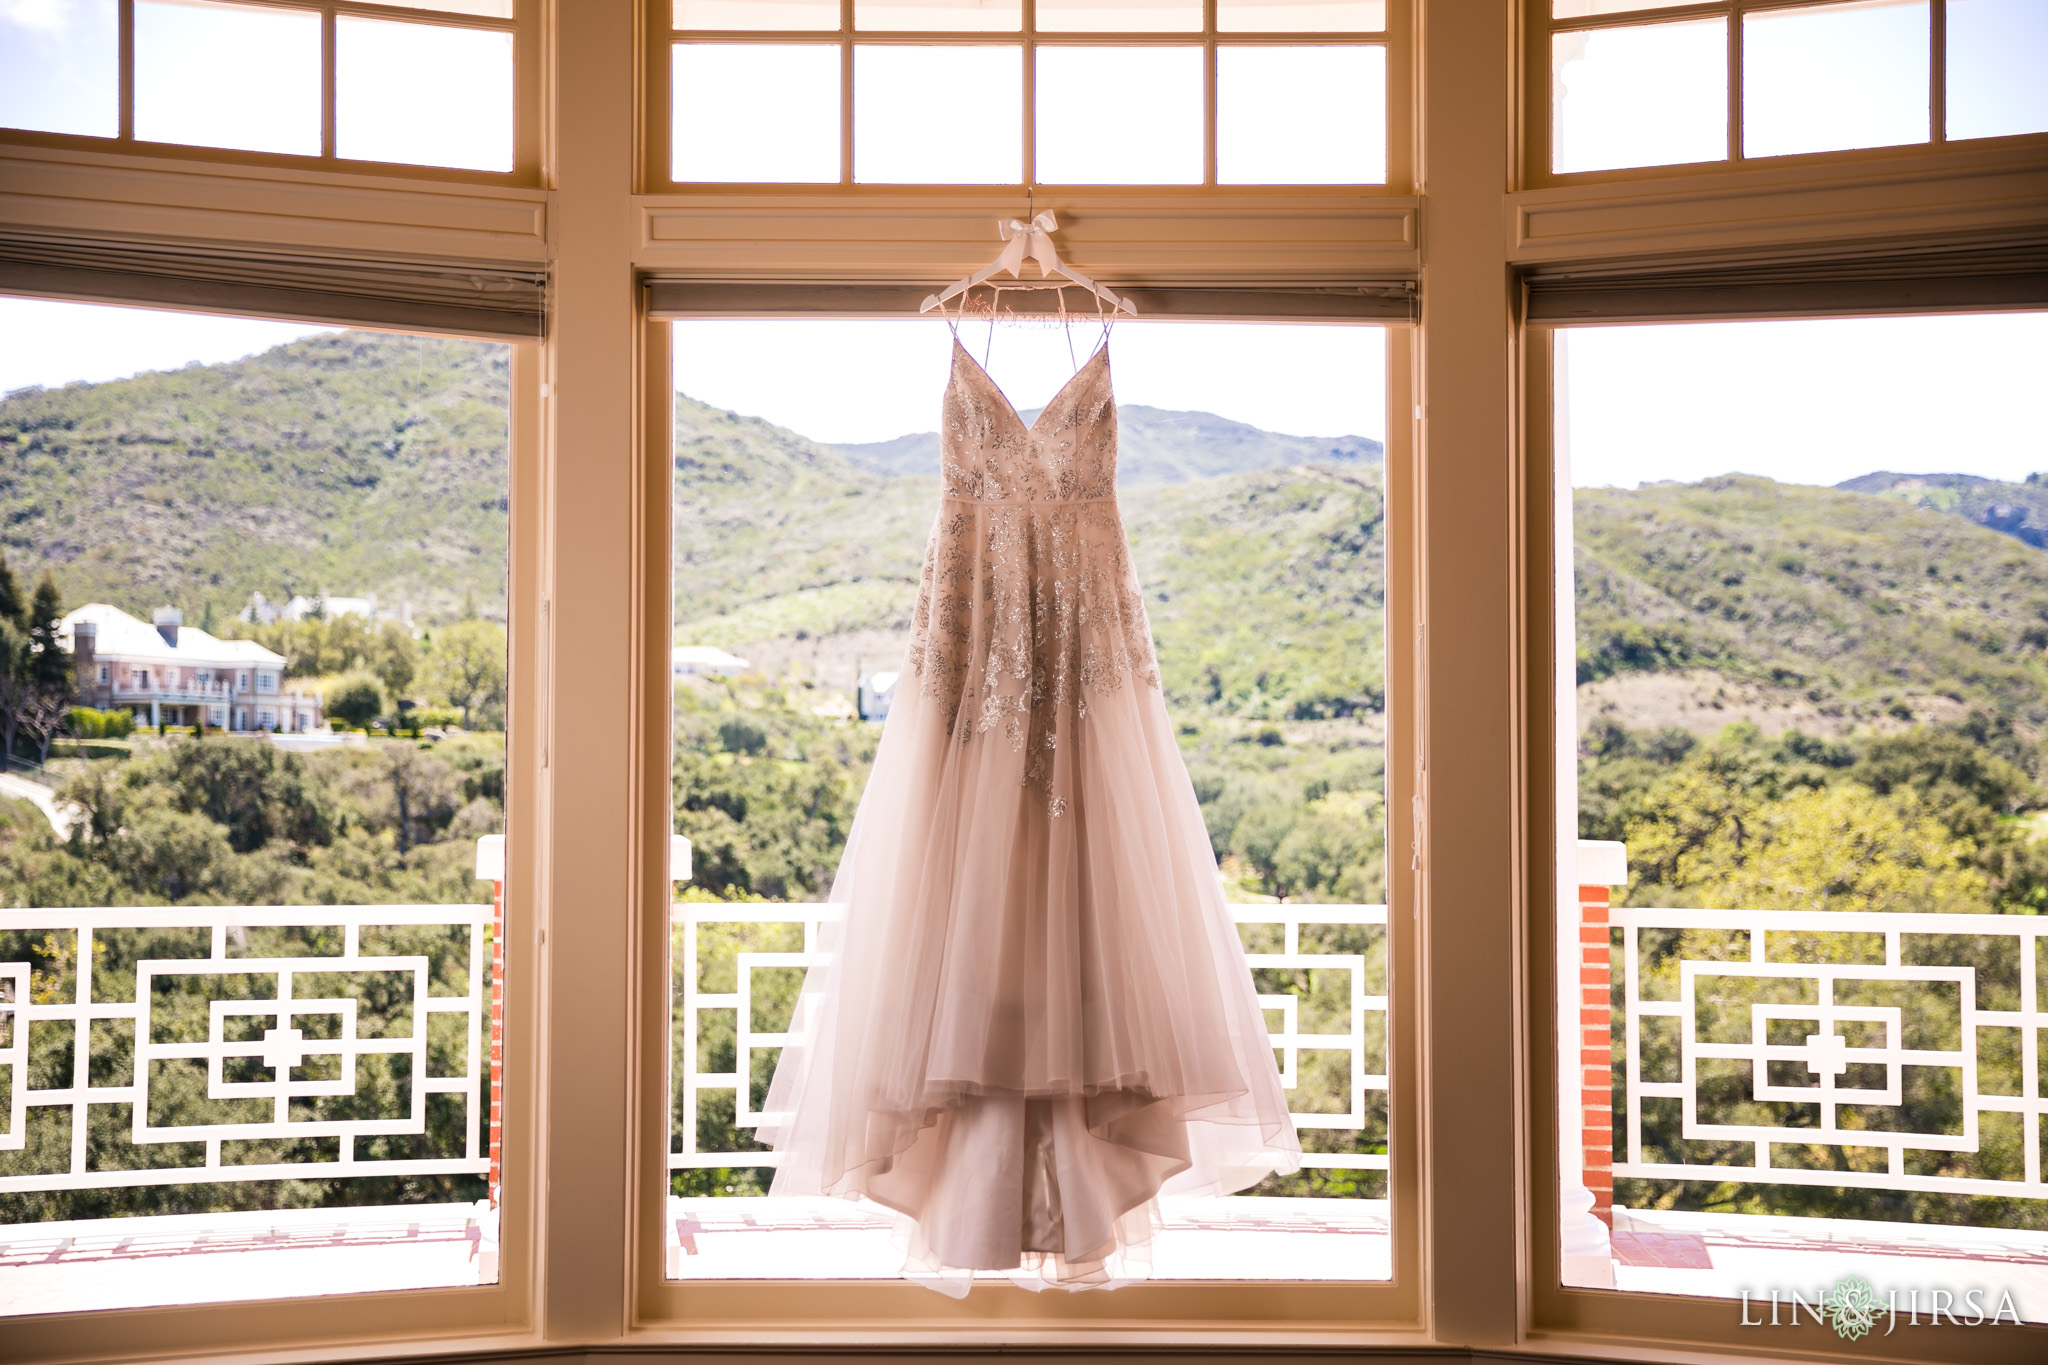 01 sherwood country club ventura county bride wedding photography